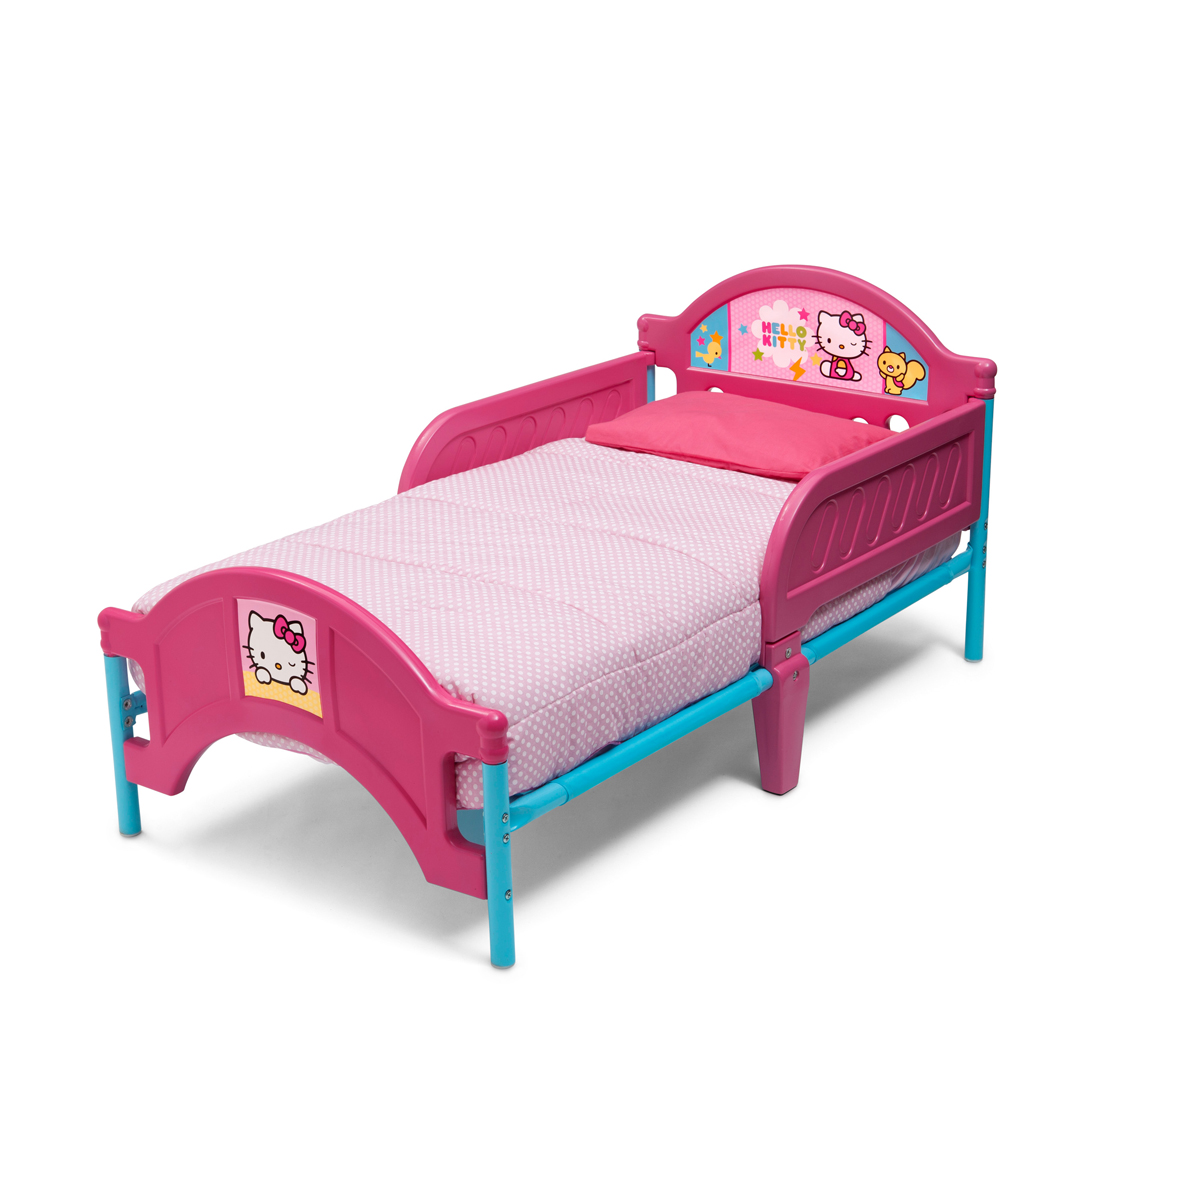 Hello Kitty Toddler Bed.Delta Children Hello Kitty Plastic Toddler Bed